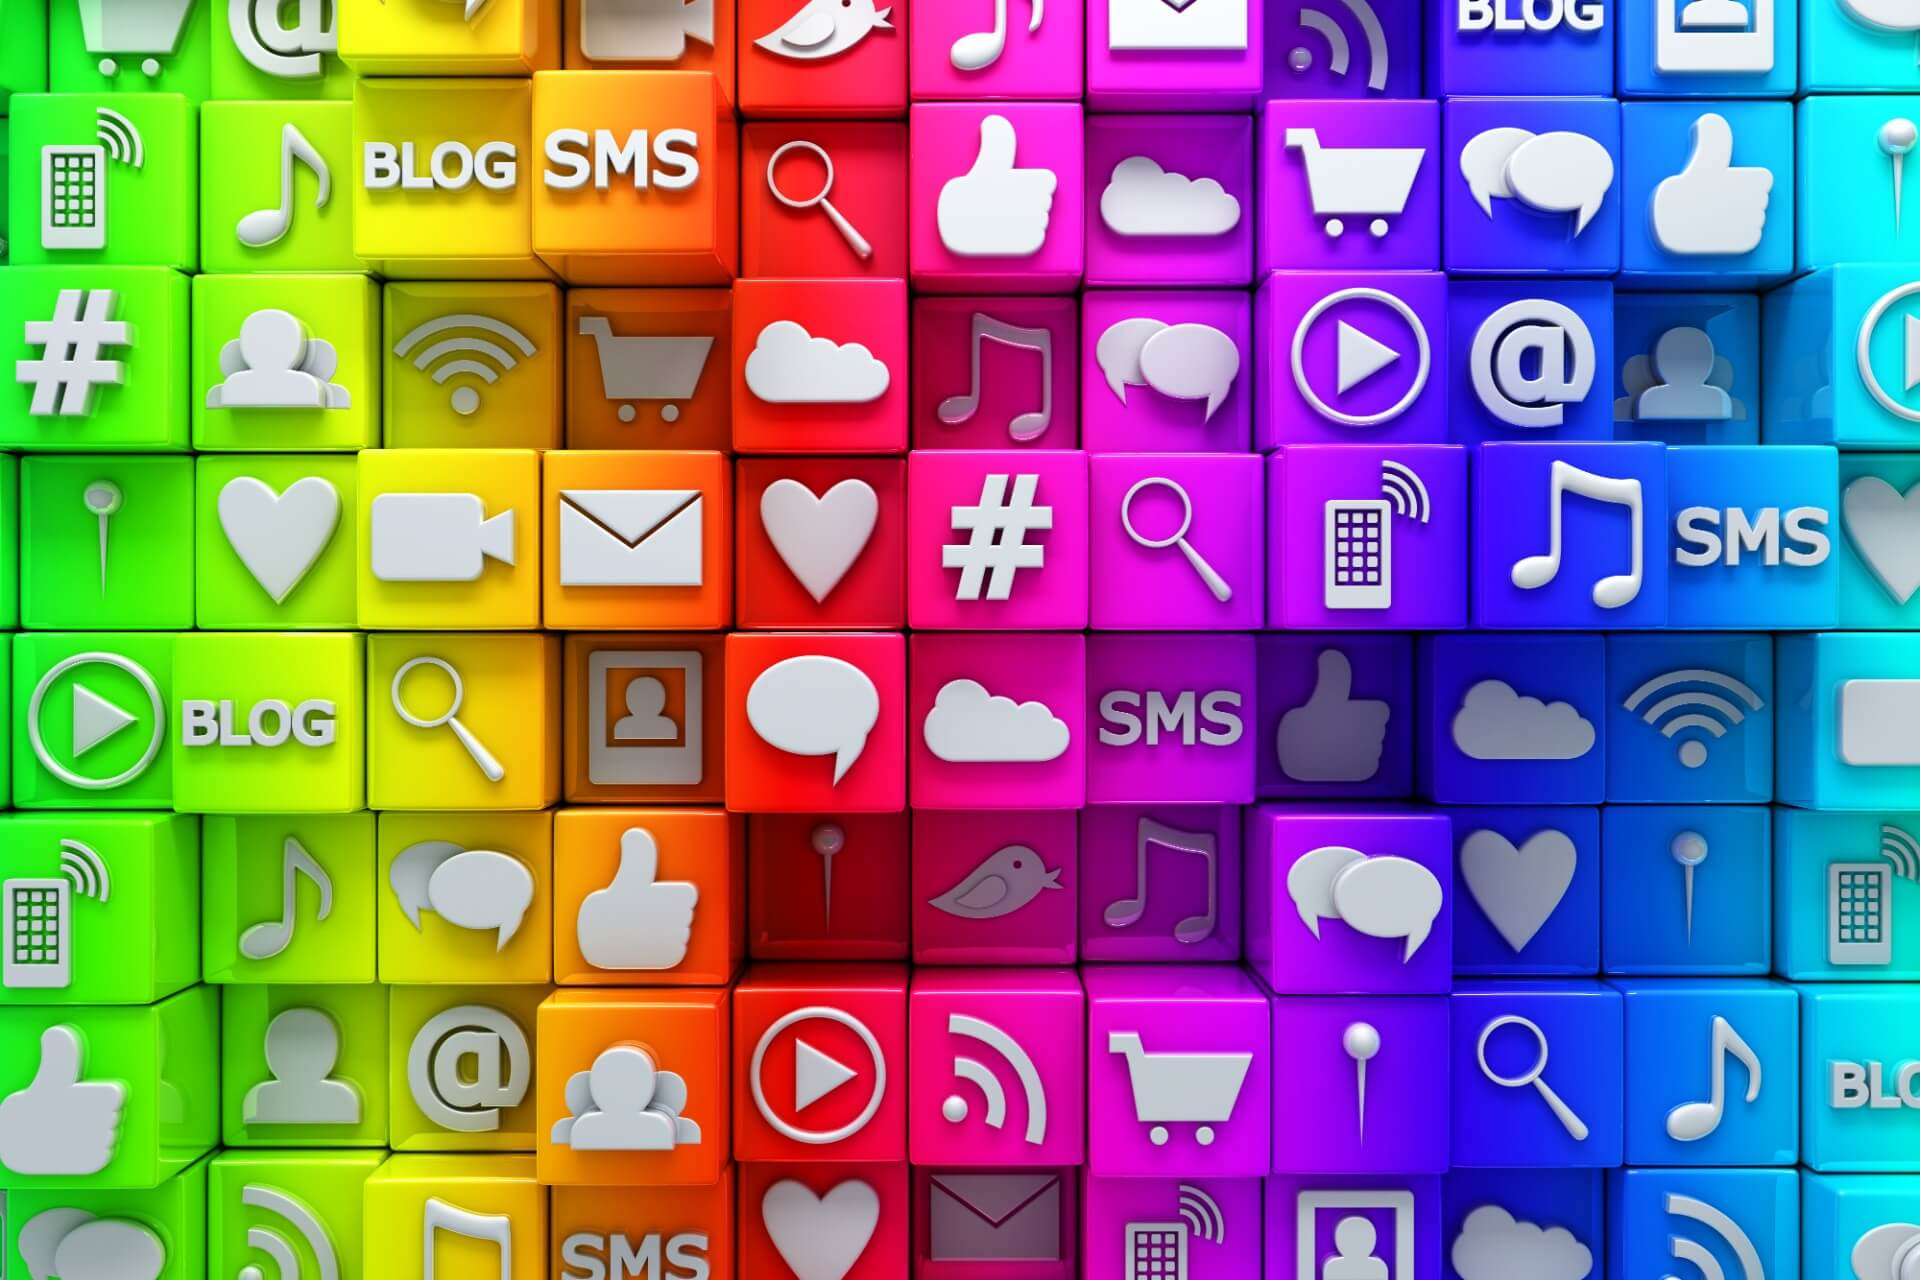 Color blocks with social media icons